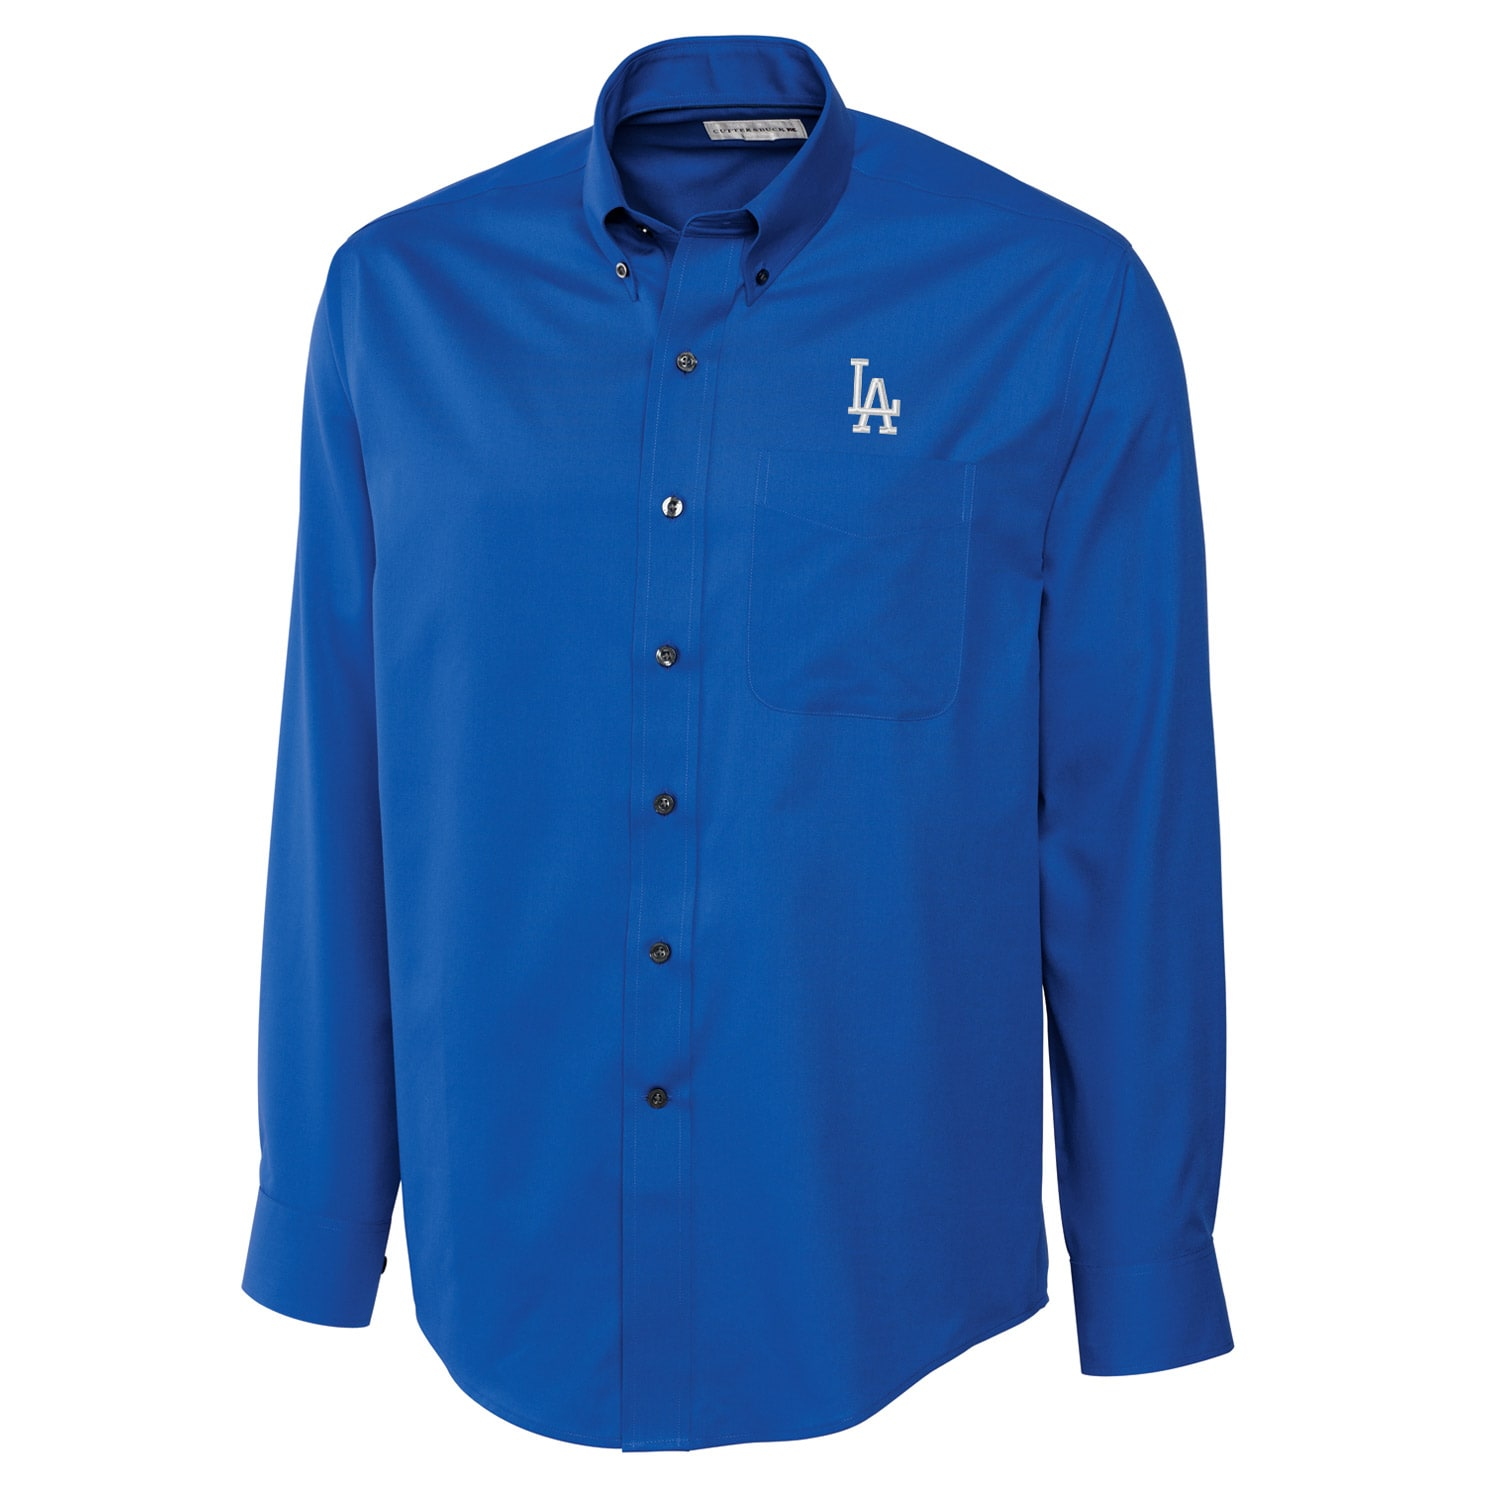 Los Angeles Dodgers Cutter & Buck Big & Tall Epic Easy Care Fine Twill Long Sleeve Shirt - Royal